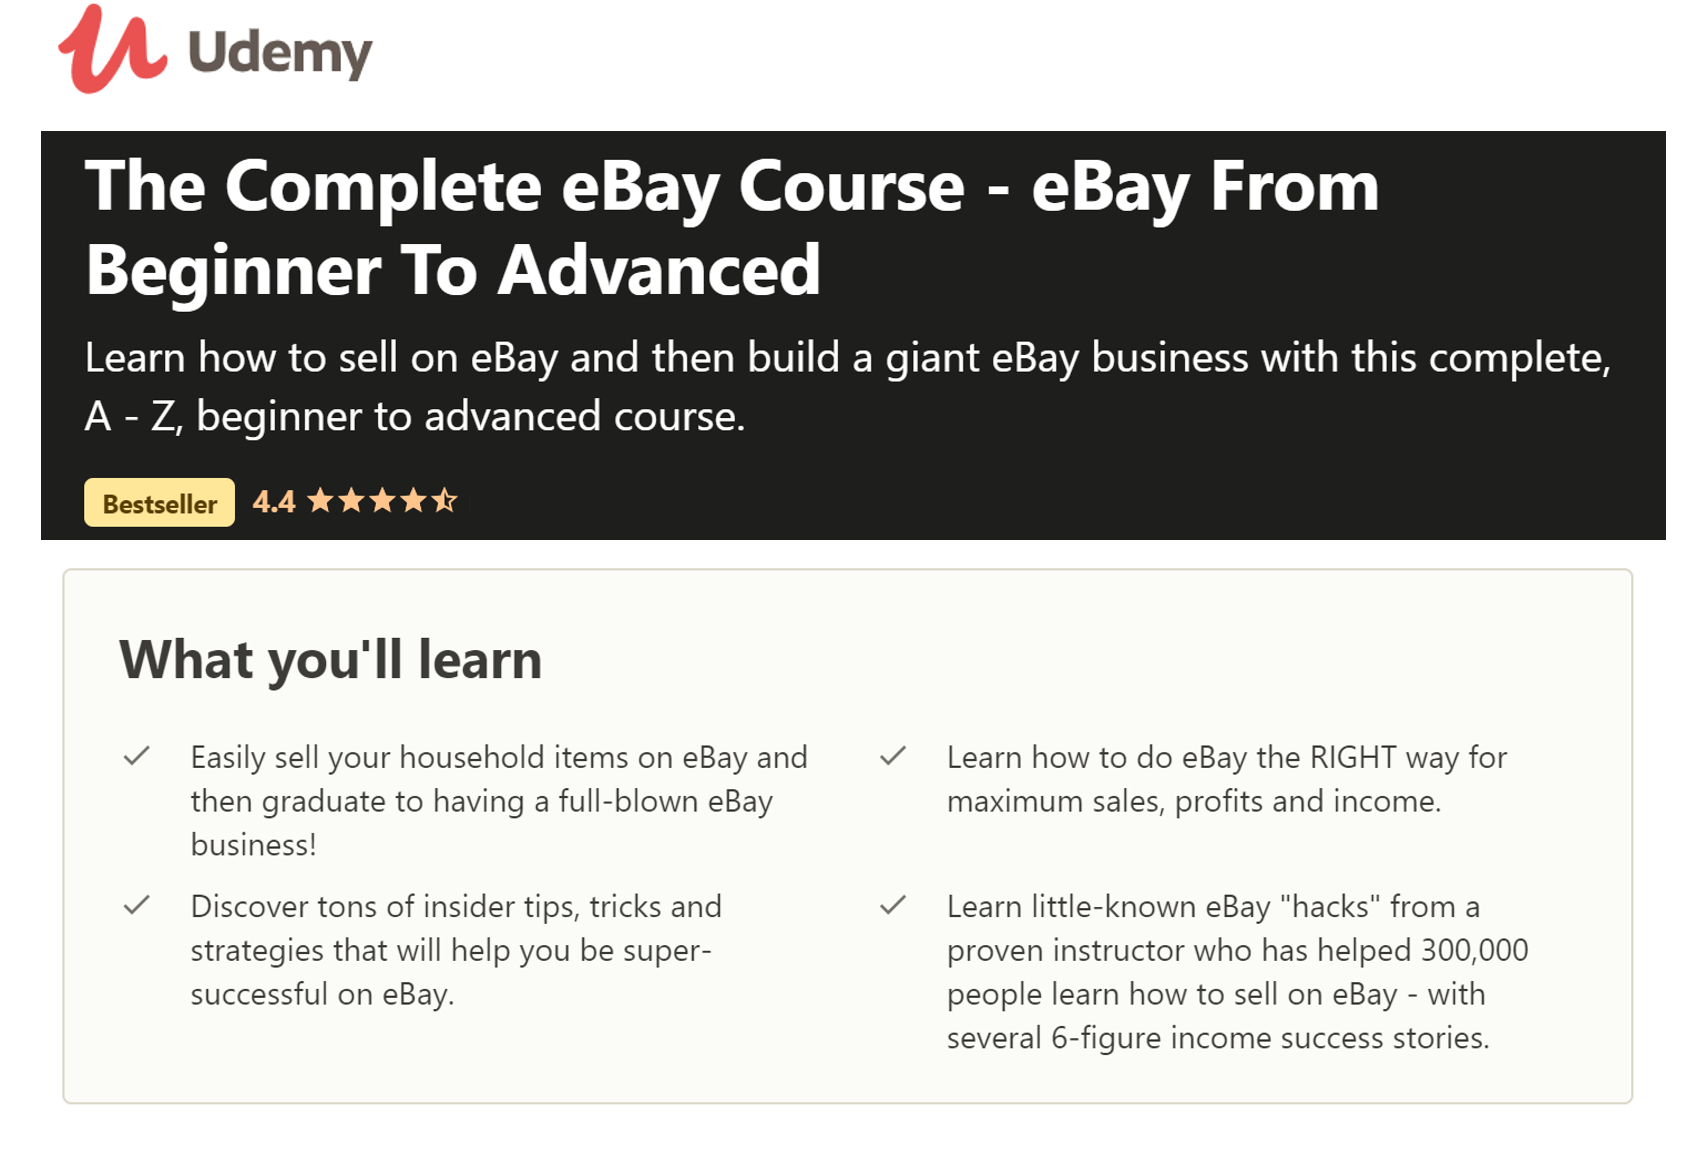 EBay Course From Beginner to Advanced